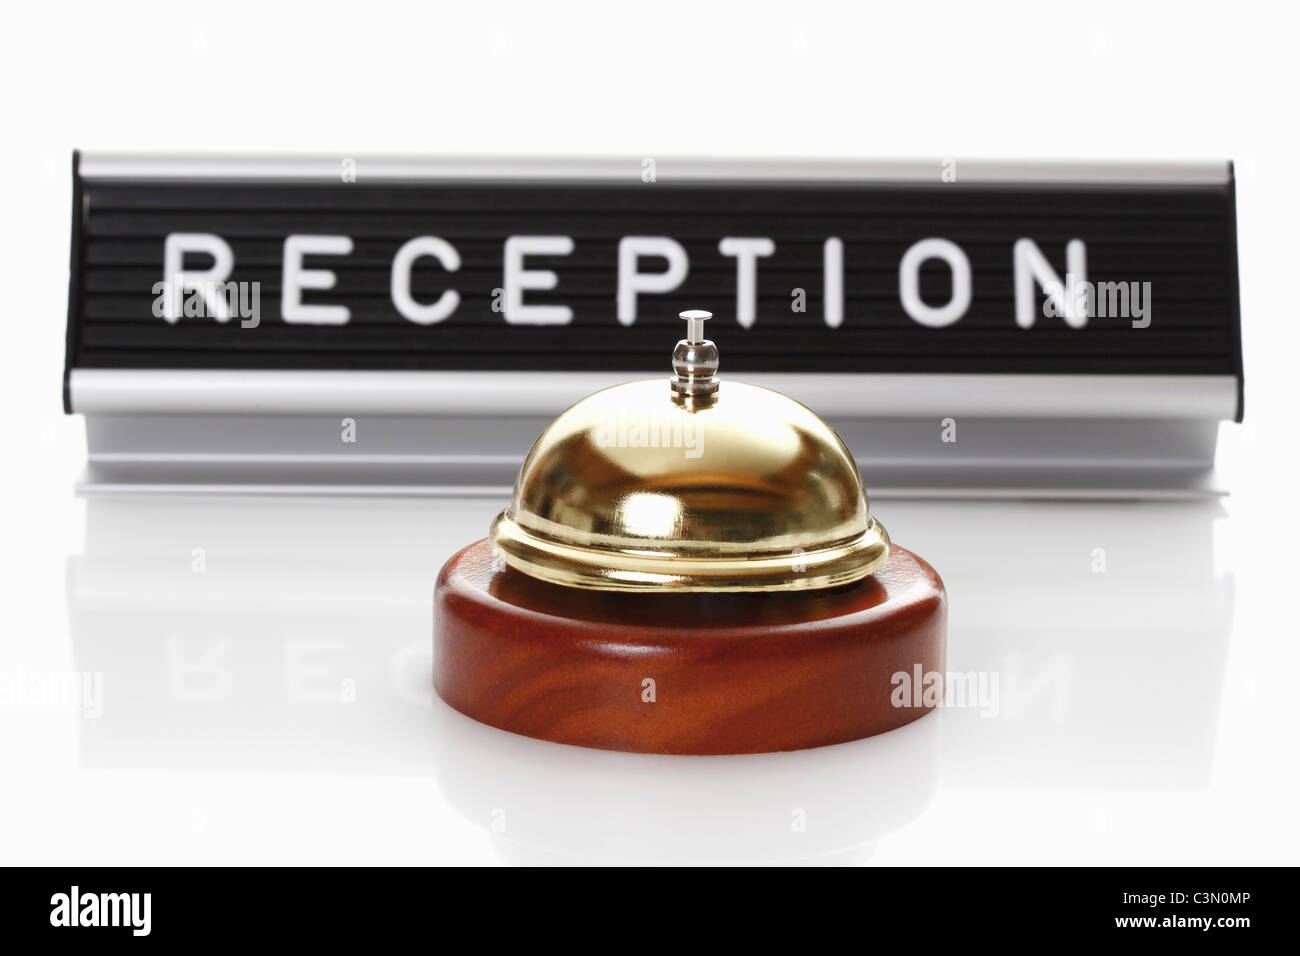 Reception sign with service bell on white background - Stock Image